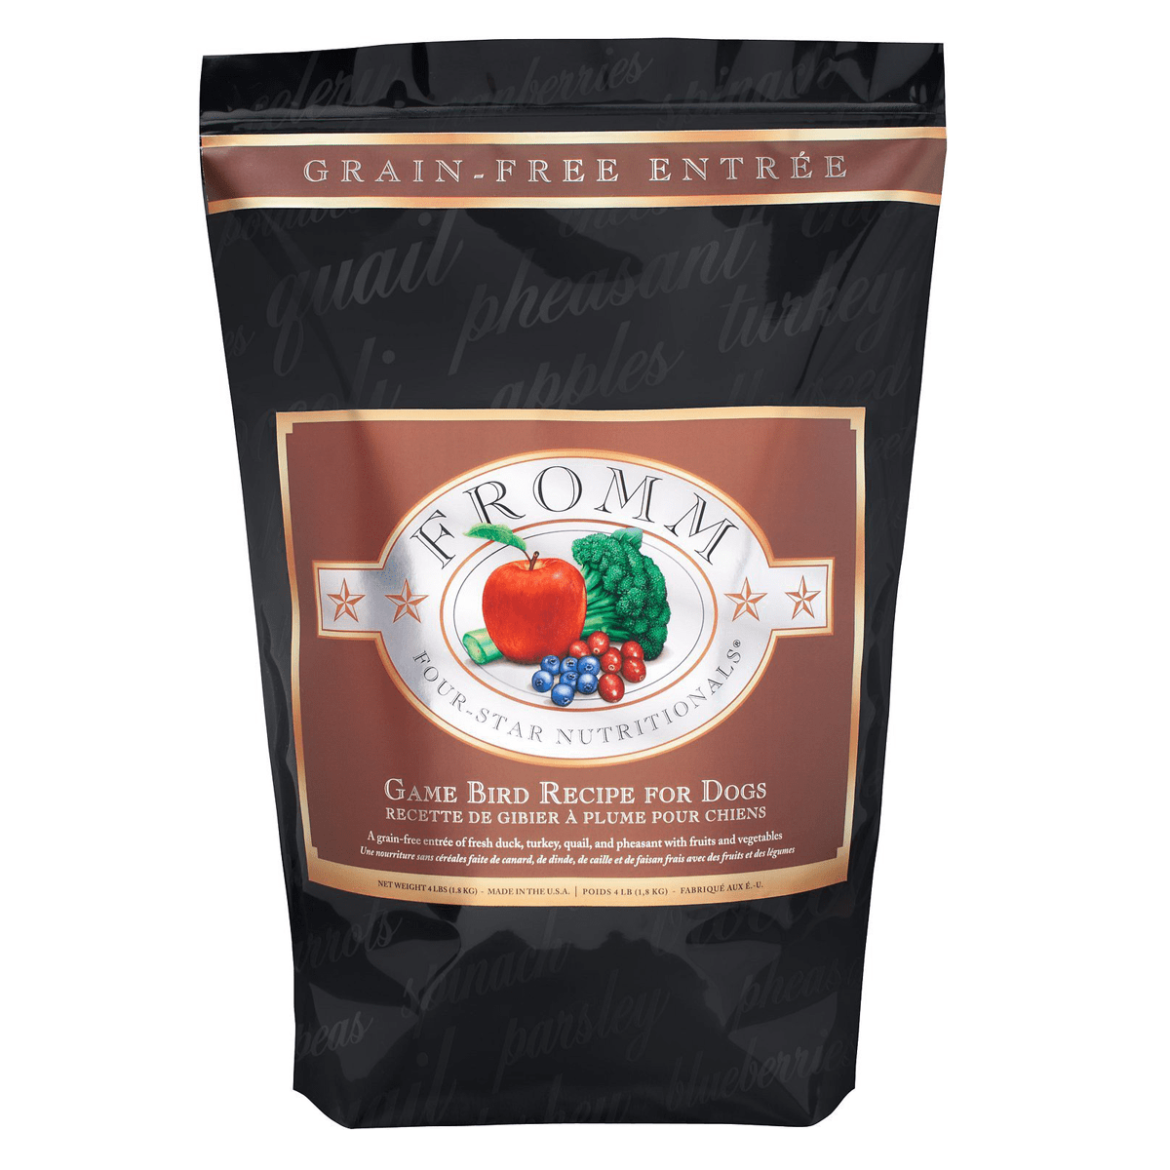 fromm-dog-food | Pawsitively Natural Pet Food & Supplies